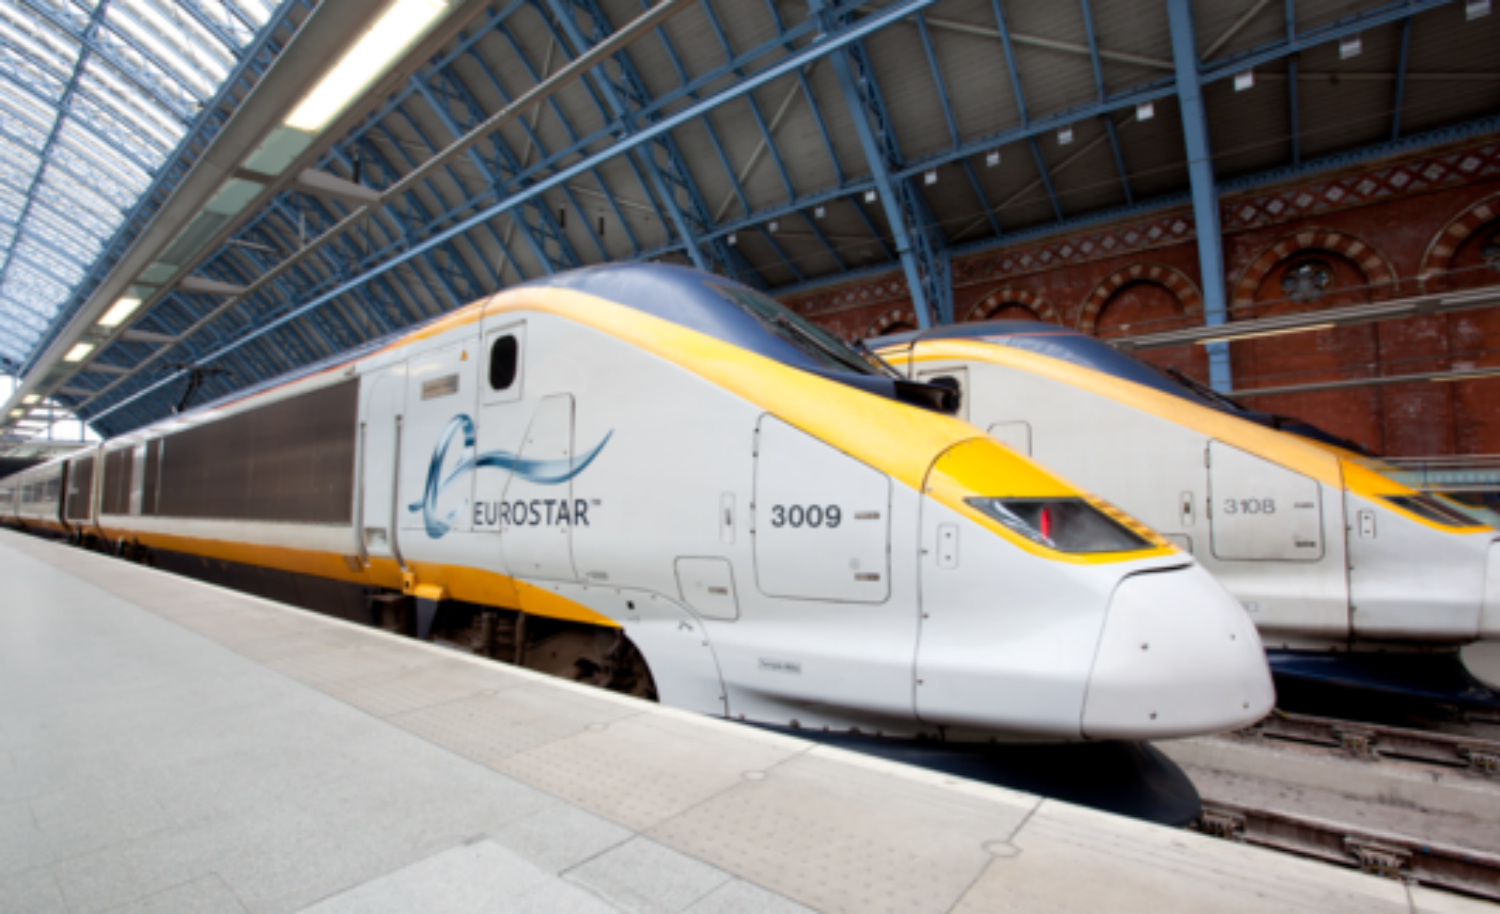 Eurostar services delayed as migrants climb on train